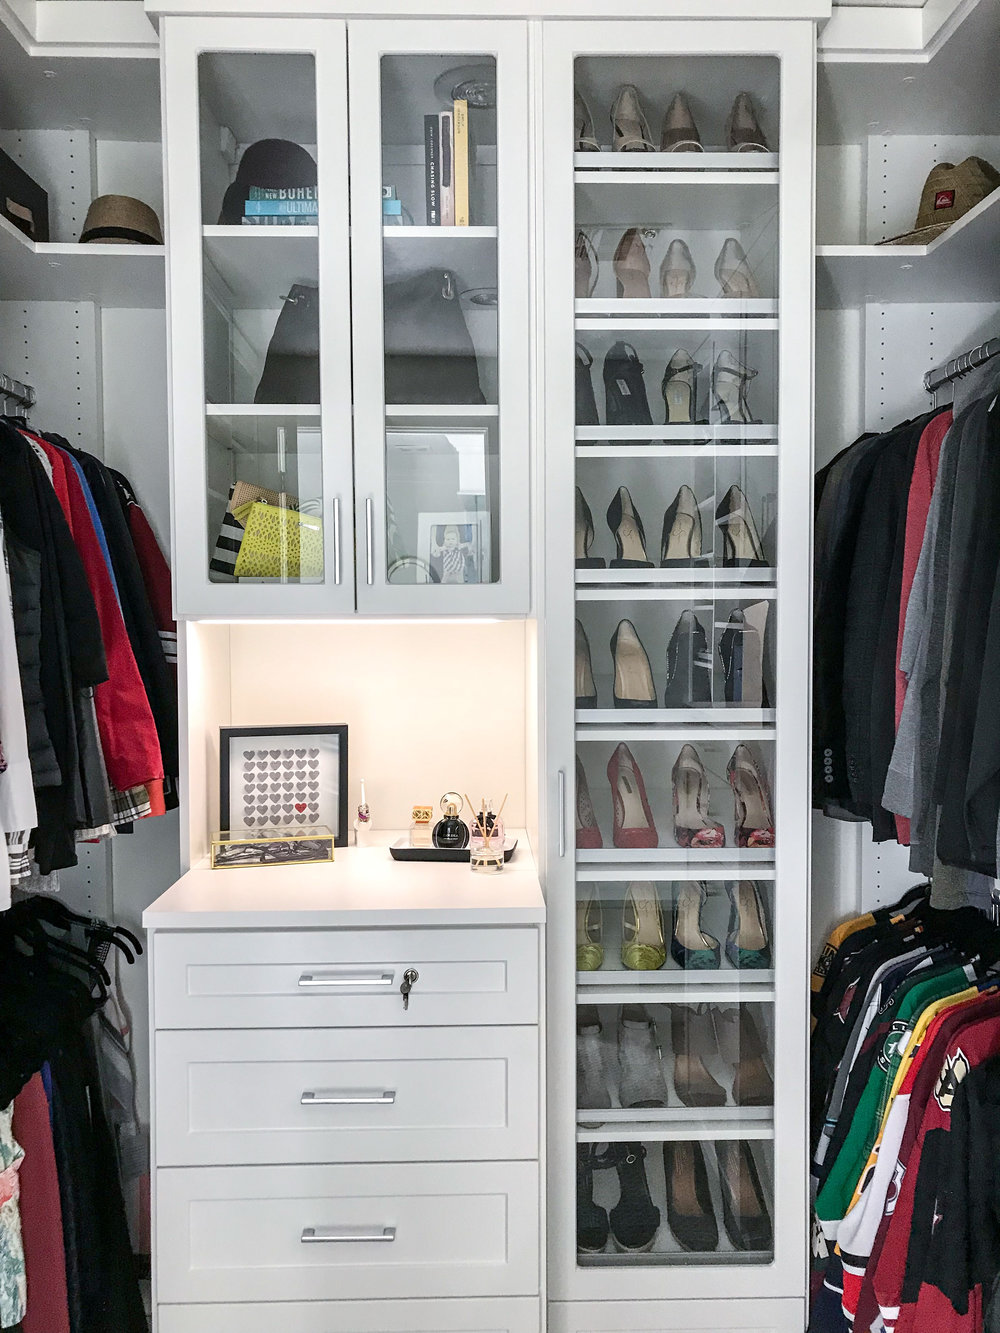 This Master Closet Started As A Very Underwhelming Space For This Stunning  Home. In Working With California Closets And Having A Well Defined Design  Plan, ...